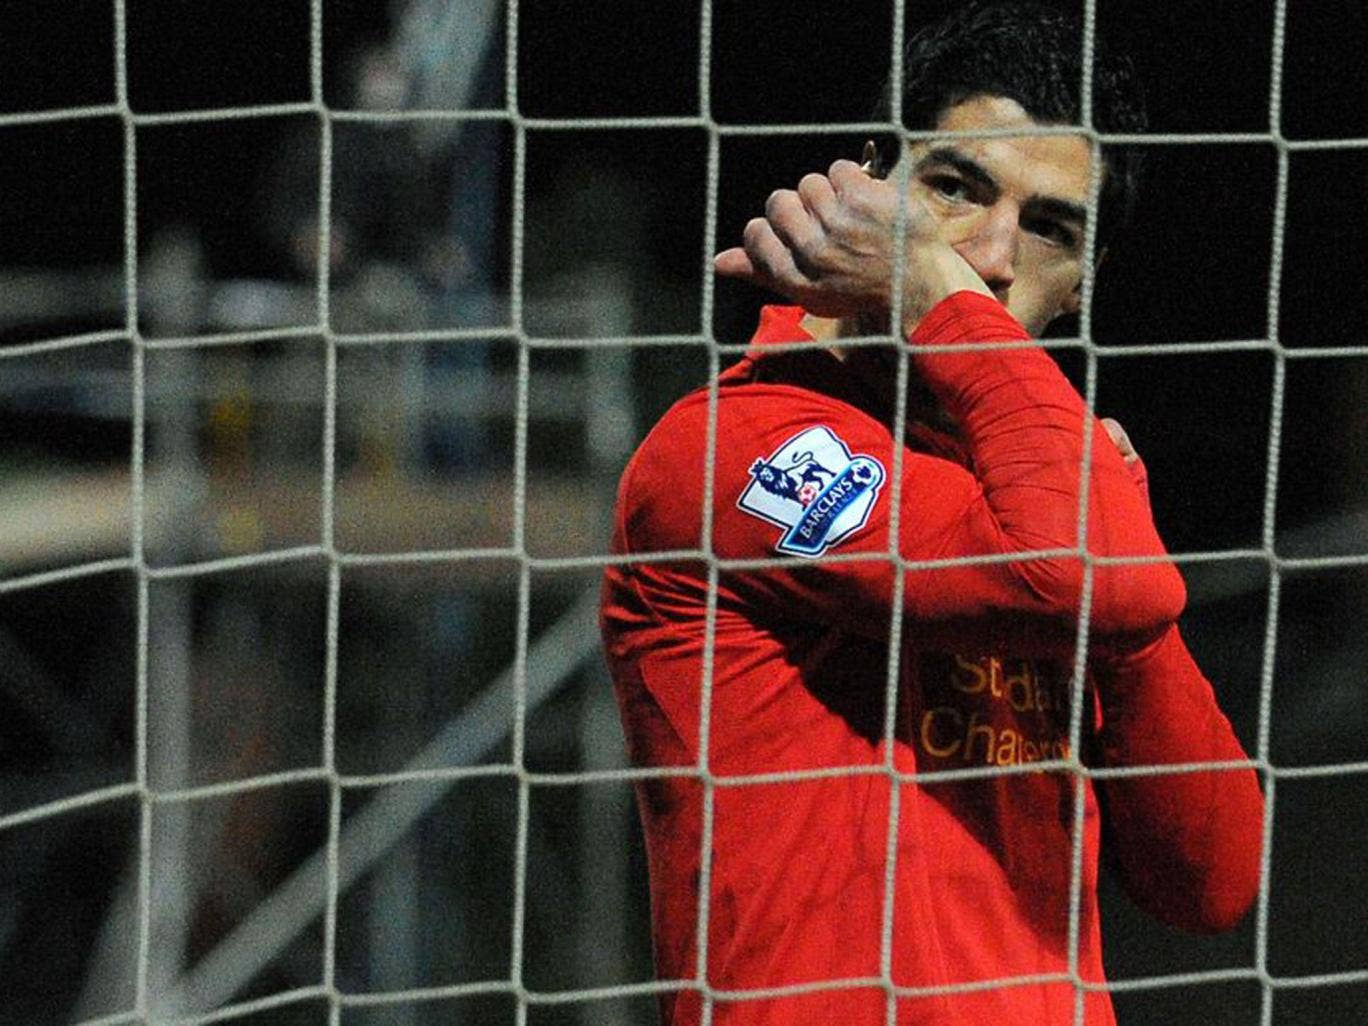 Suarez confirmed his status as the most brilliant but troubling enigma